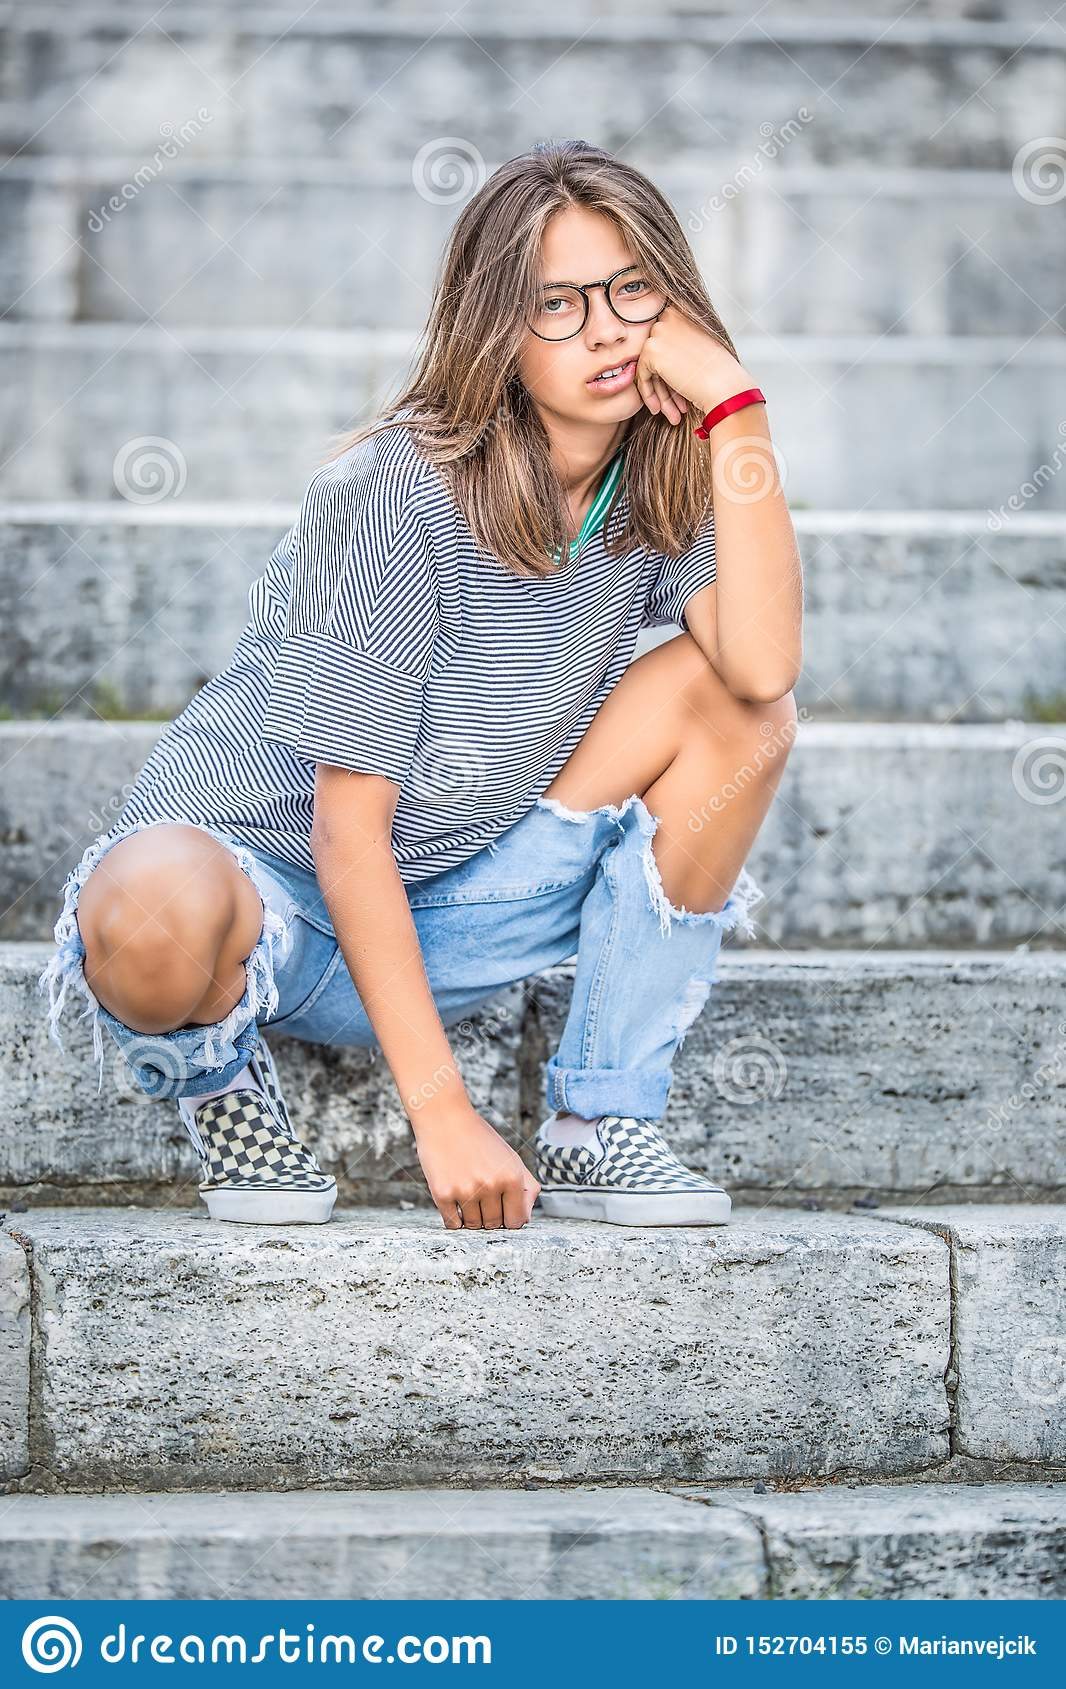 Portraito of young girl in a free modern outfit from jeans with holes